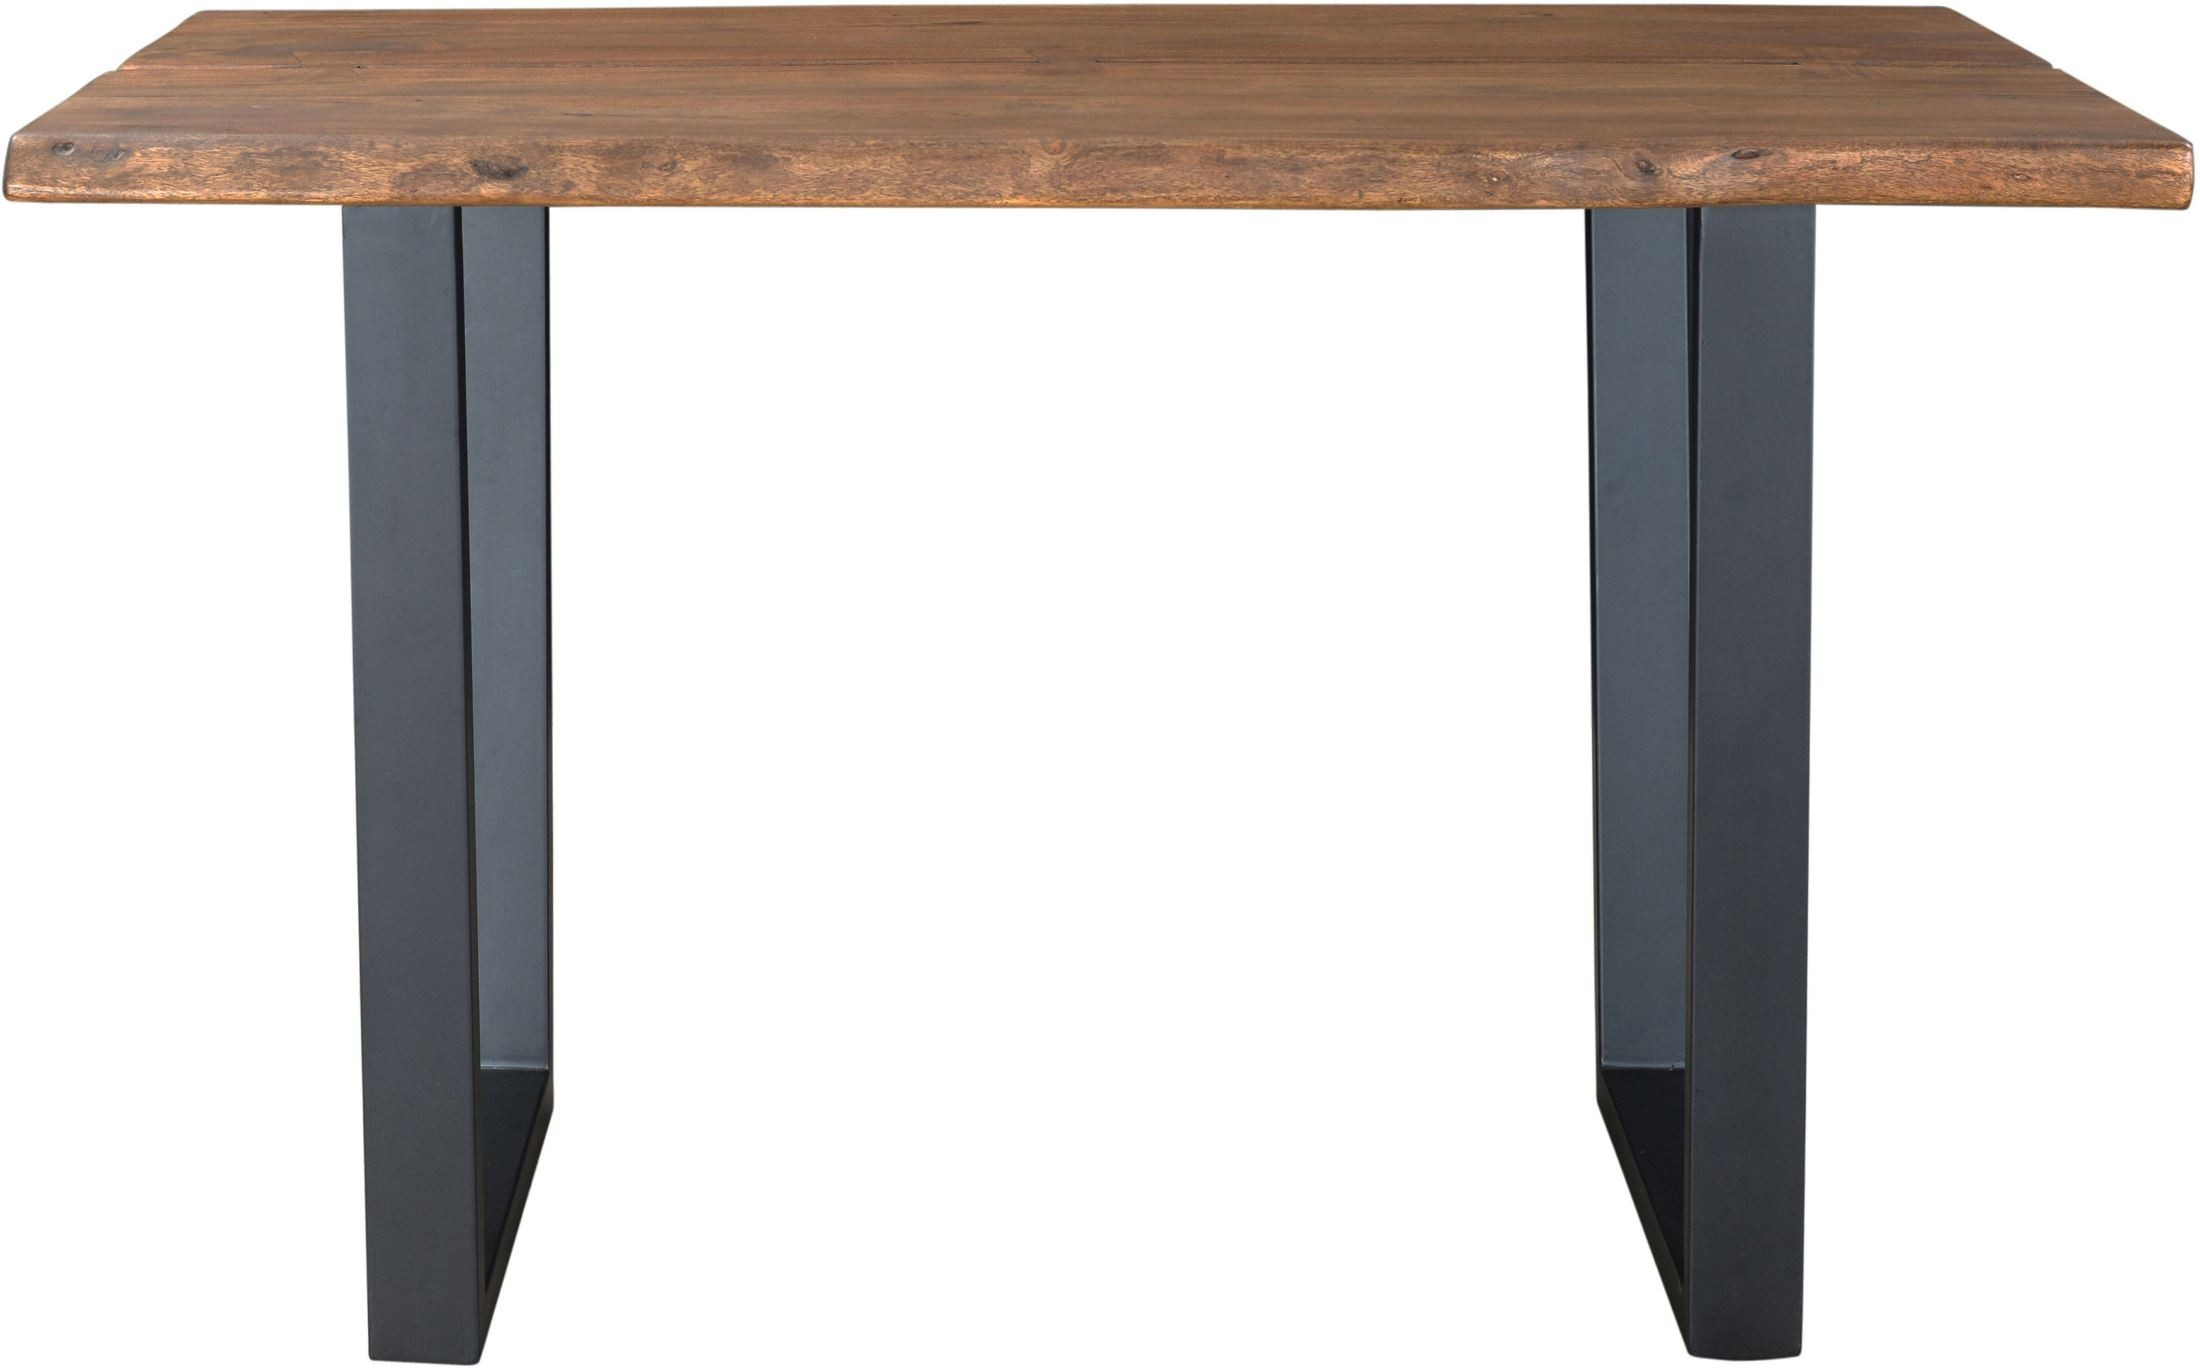 sequoia honey brown counter height dining table 93433 coast to coast. Black Bedroom Furniture Sets. Home Design Ideas